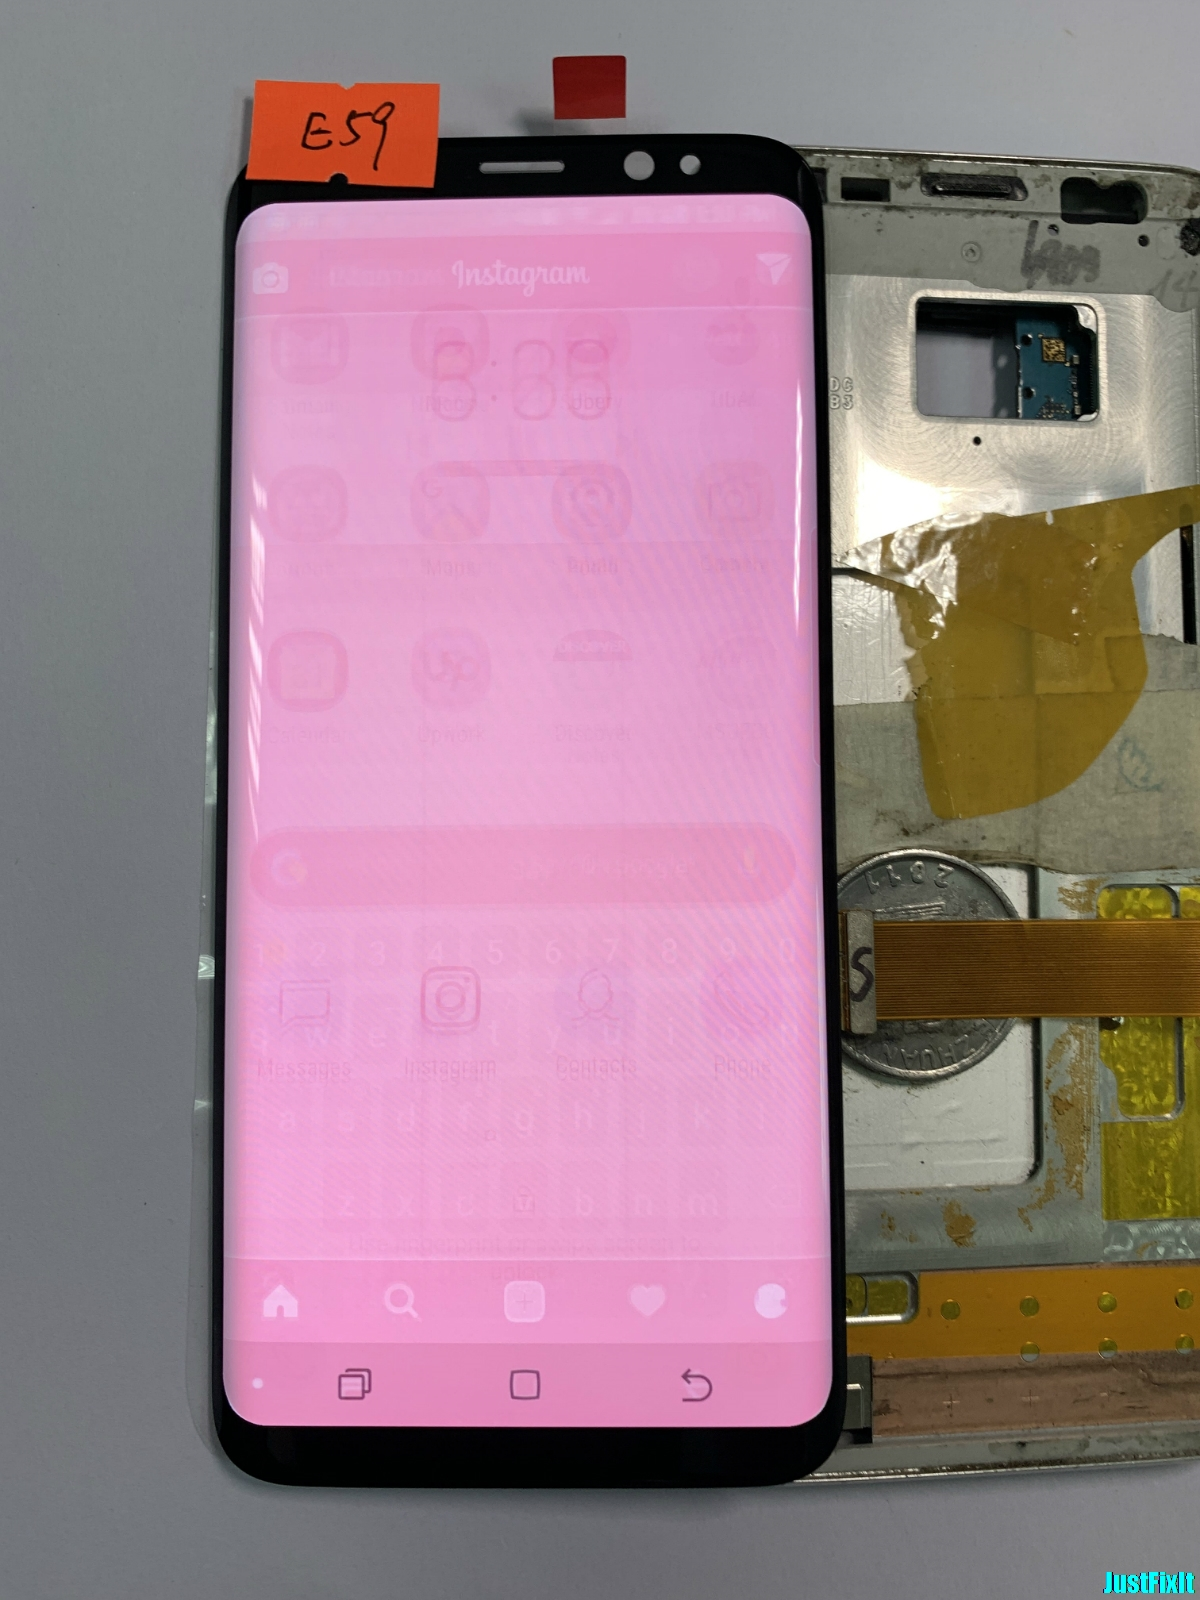 NO.E59 For Samsung Galaxy S8 G950f G950fd G950u Burn-in shadow Lcd Display Touch Screen Digitizer Super AMOLED ScreenNO.E59 For Samsung Galaxy S8 G950f G950fd G950u Burn-in shadow Lcd Display Touch Screen Digitizer Super AMOLED Screen